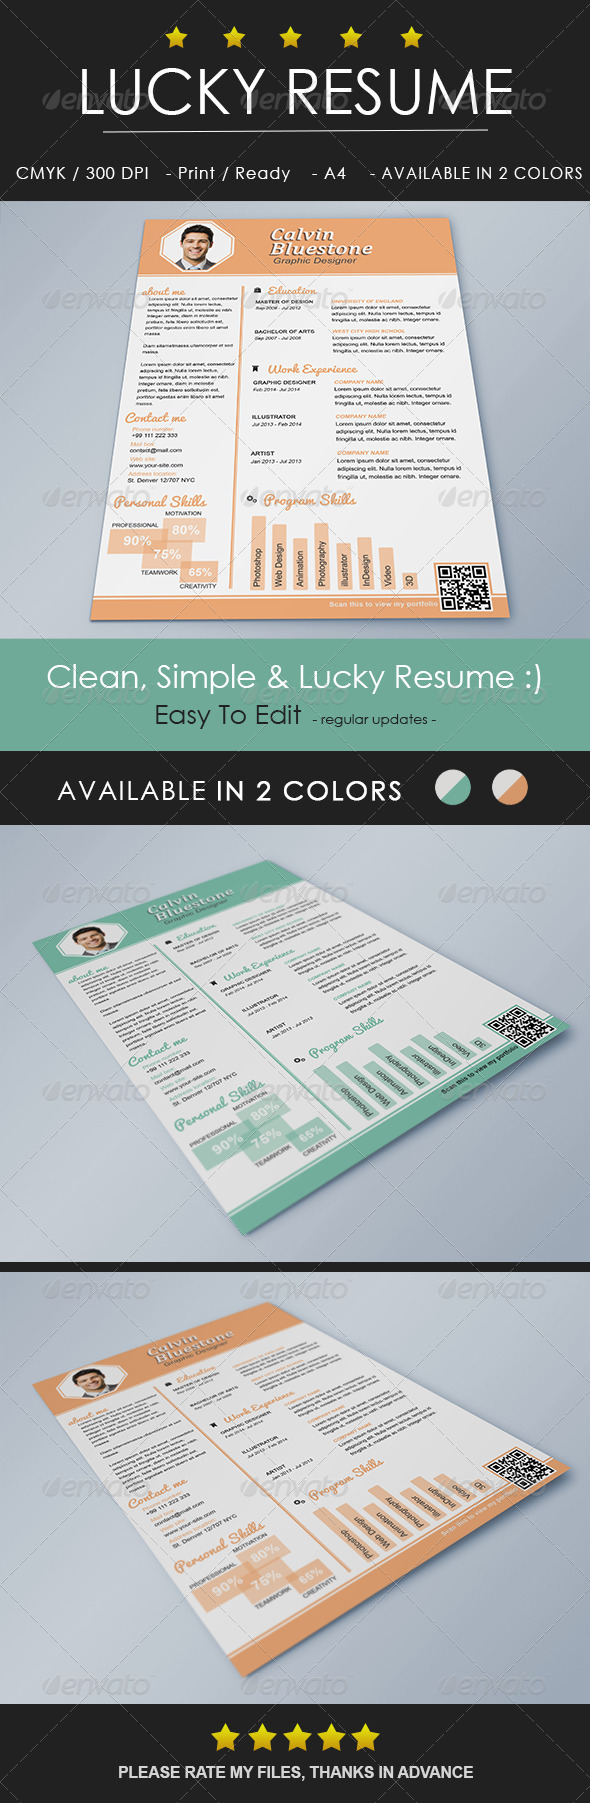 print template graphicriver lucky resume 8585724